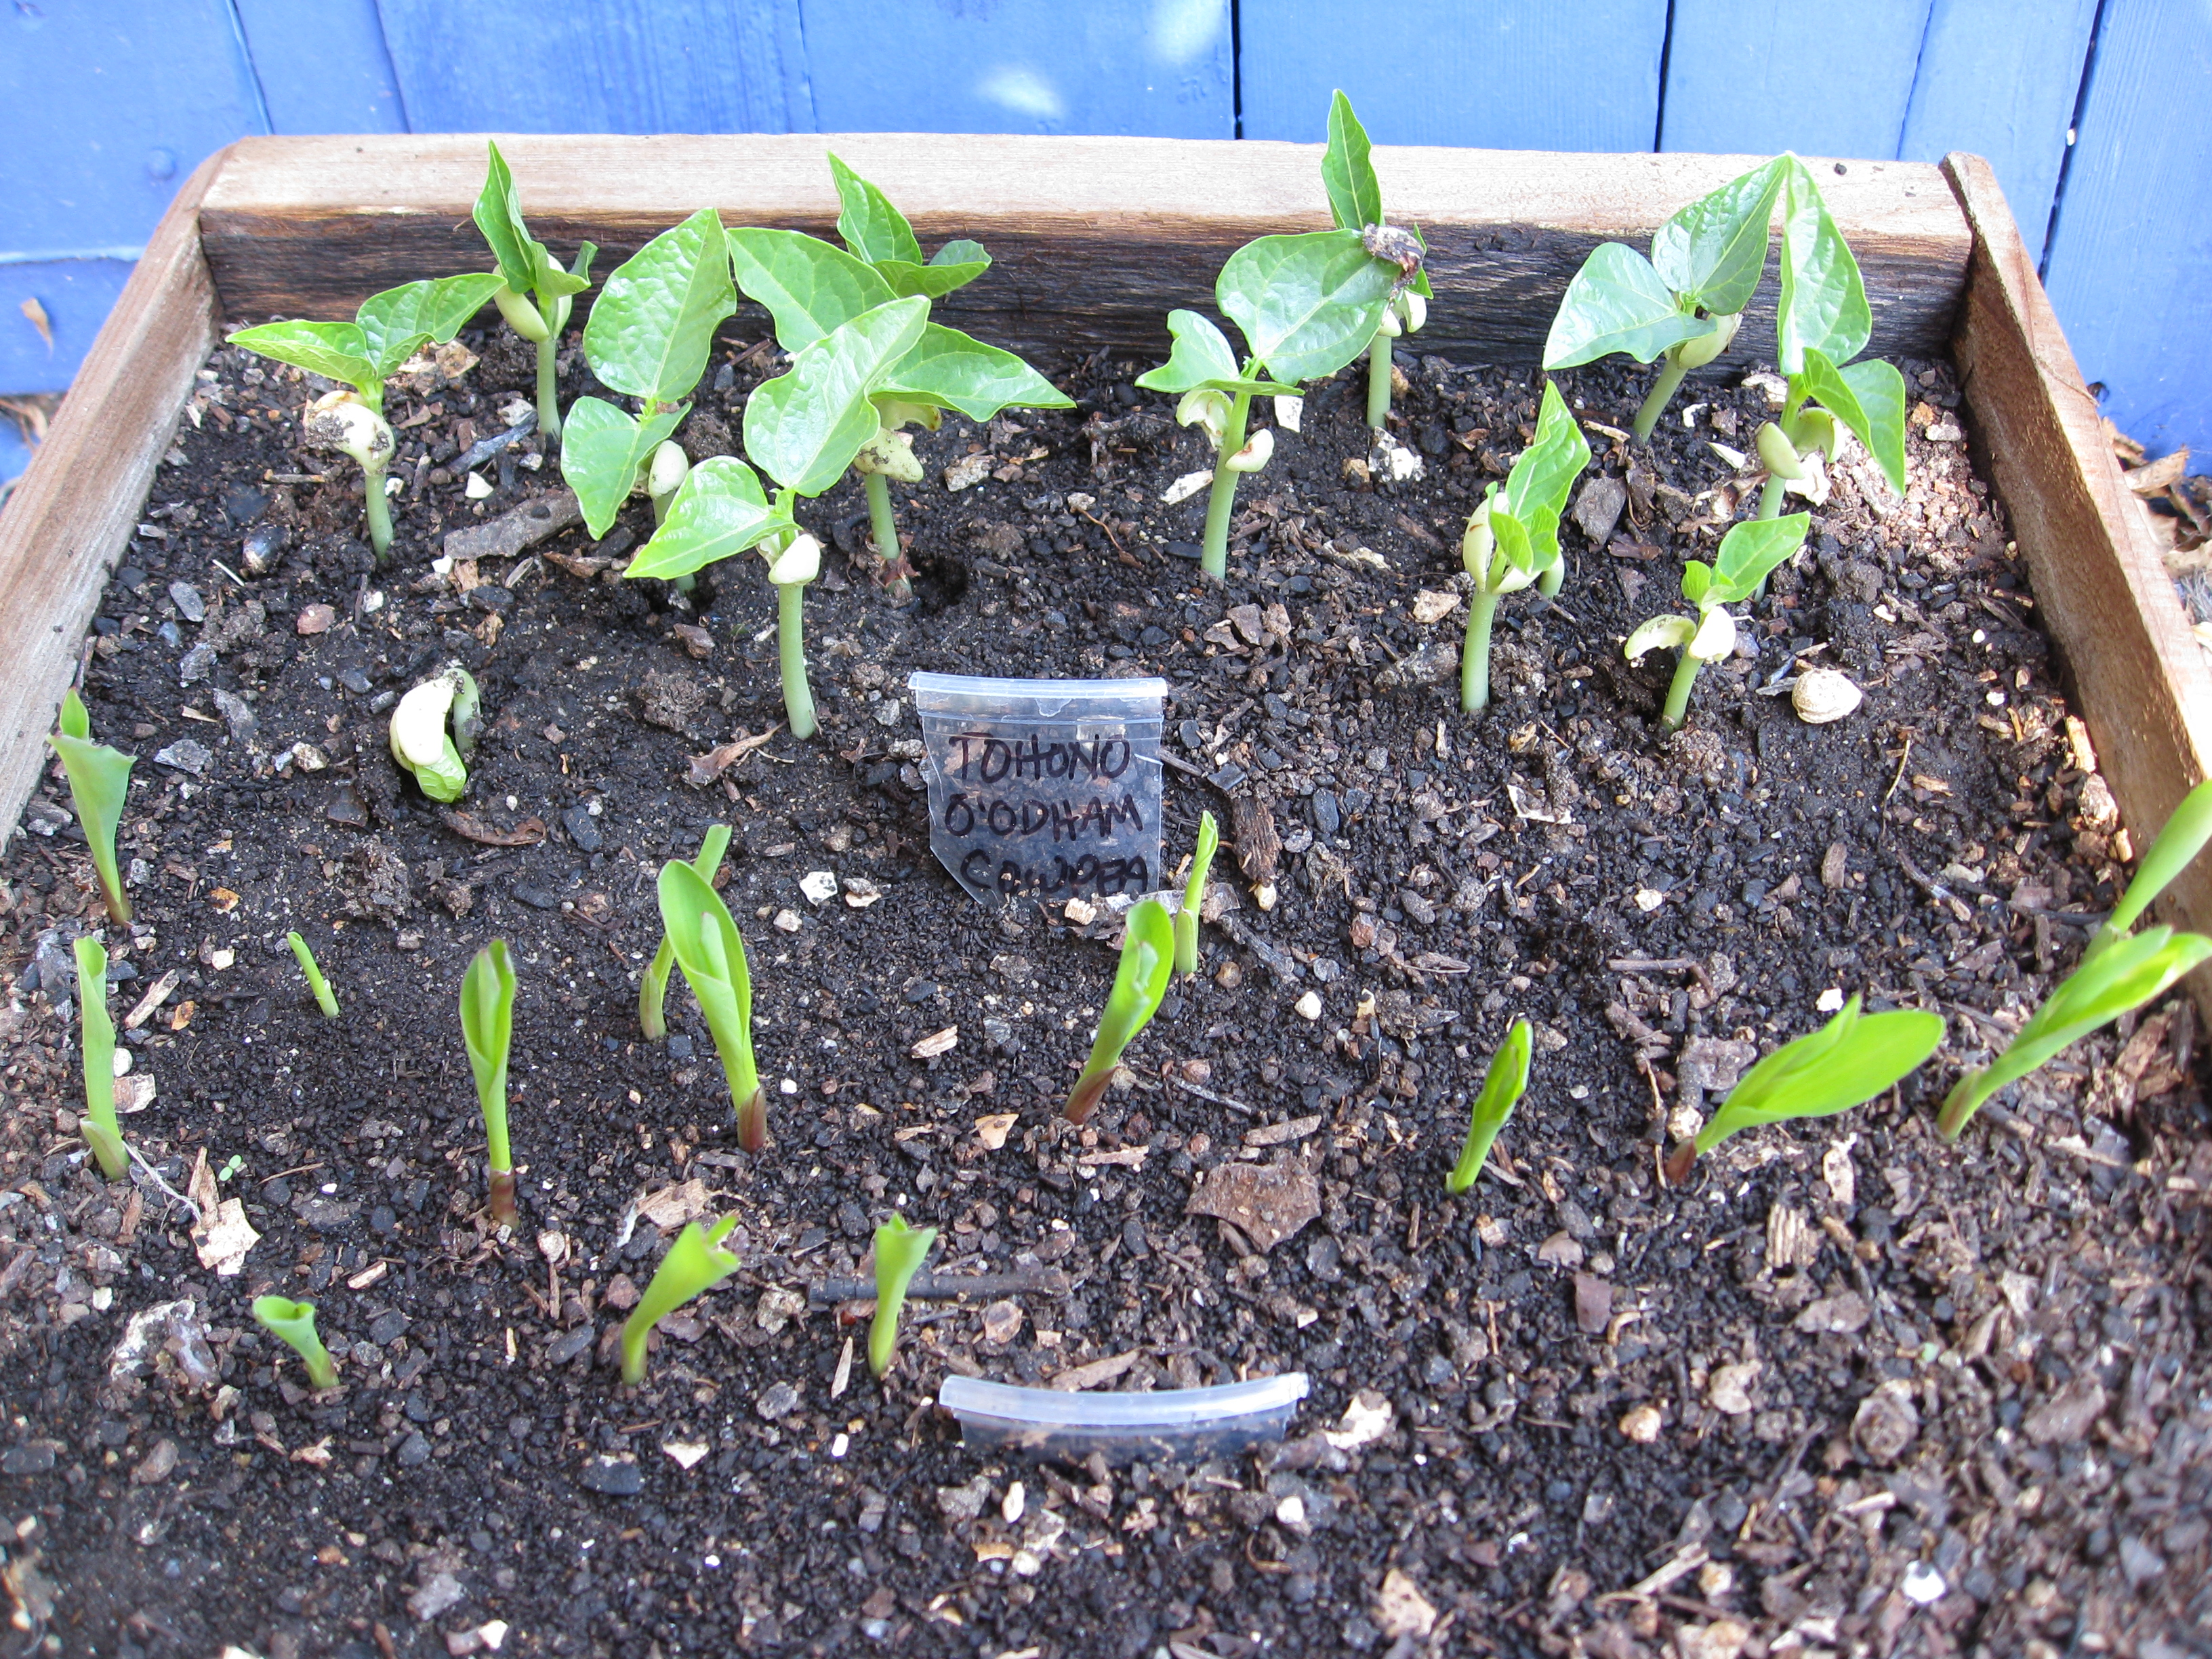 Tohono O'ohdam cowpeas and Country Gentleman corn, both heirlooms ensure diversity in the garden